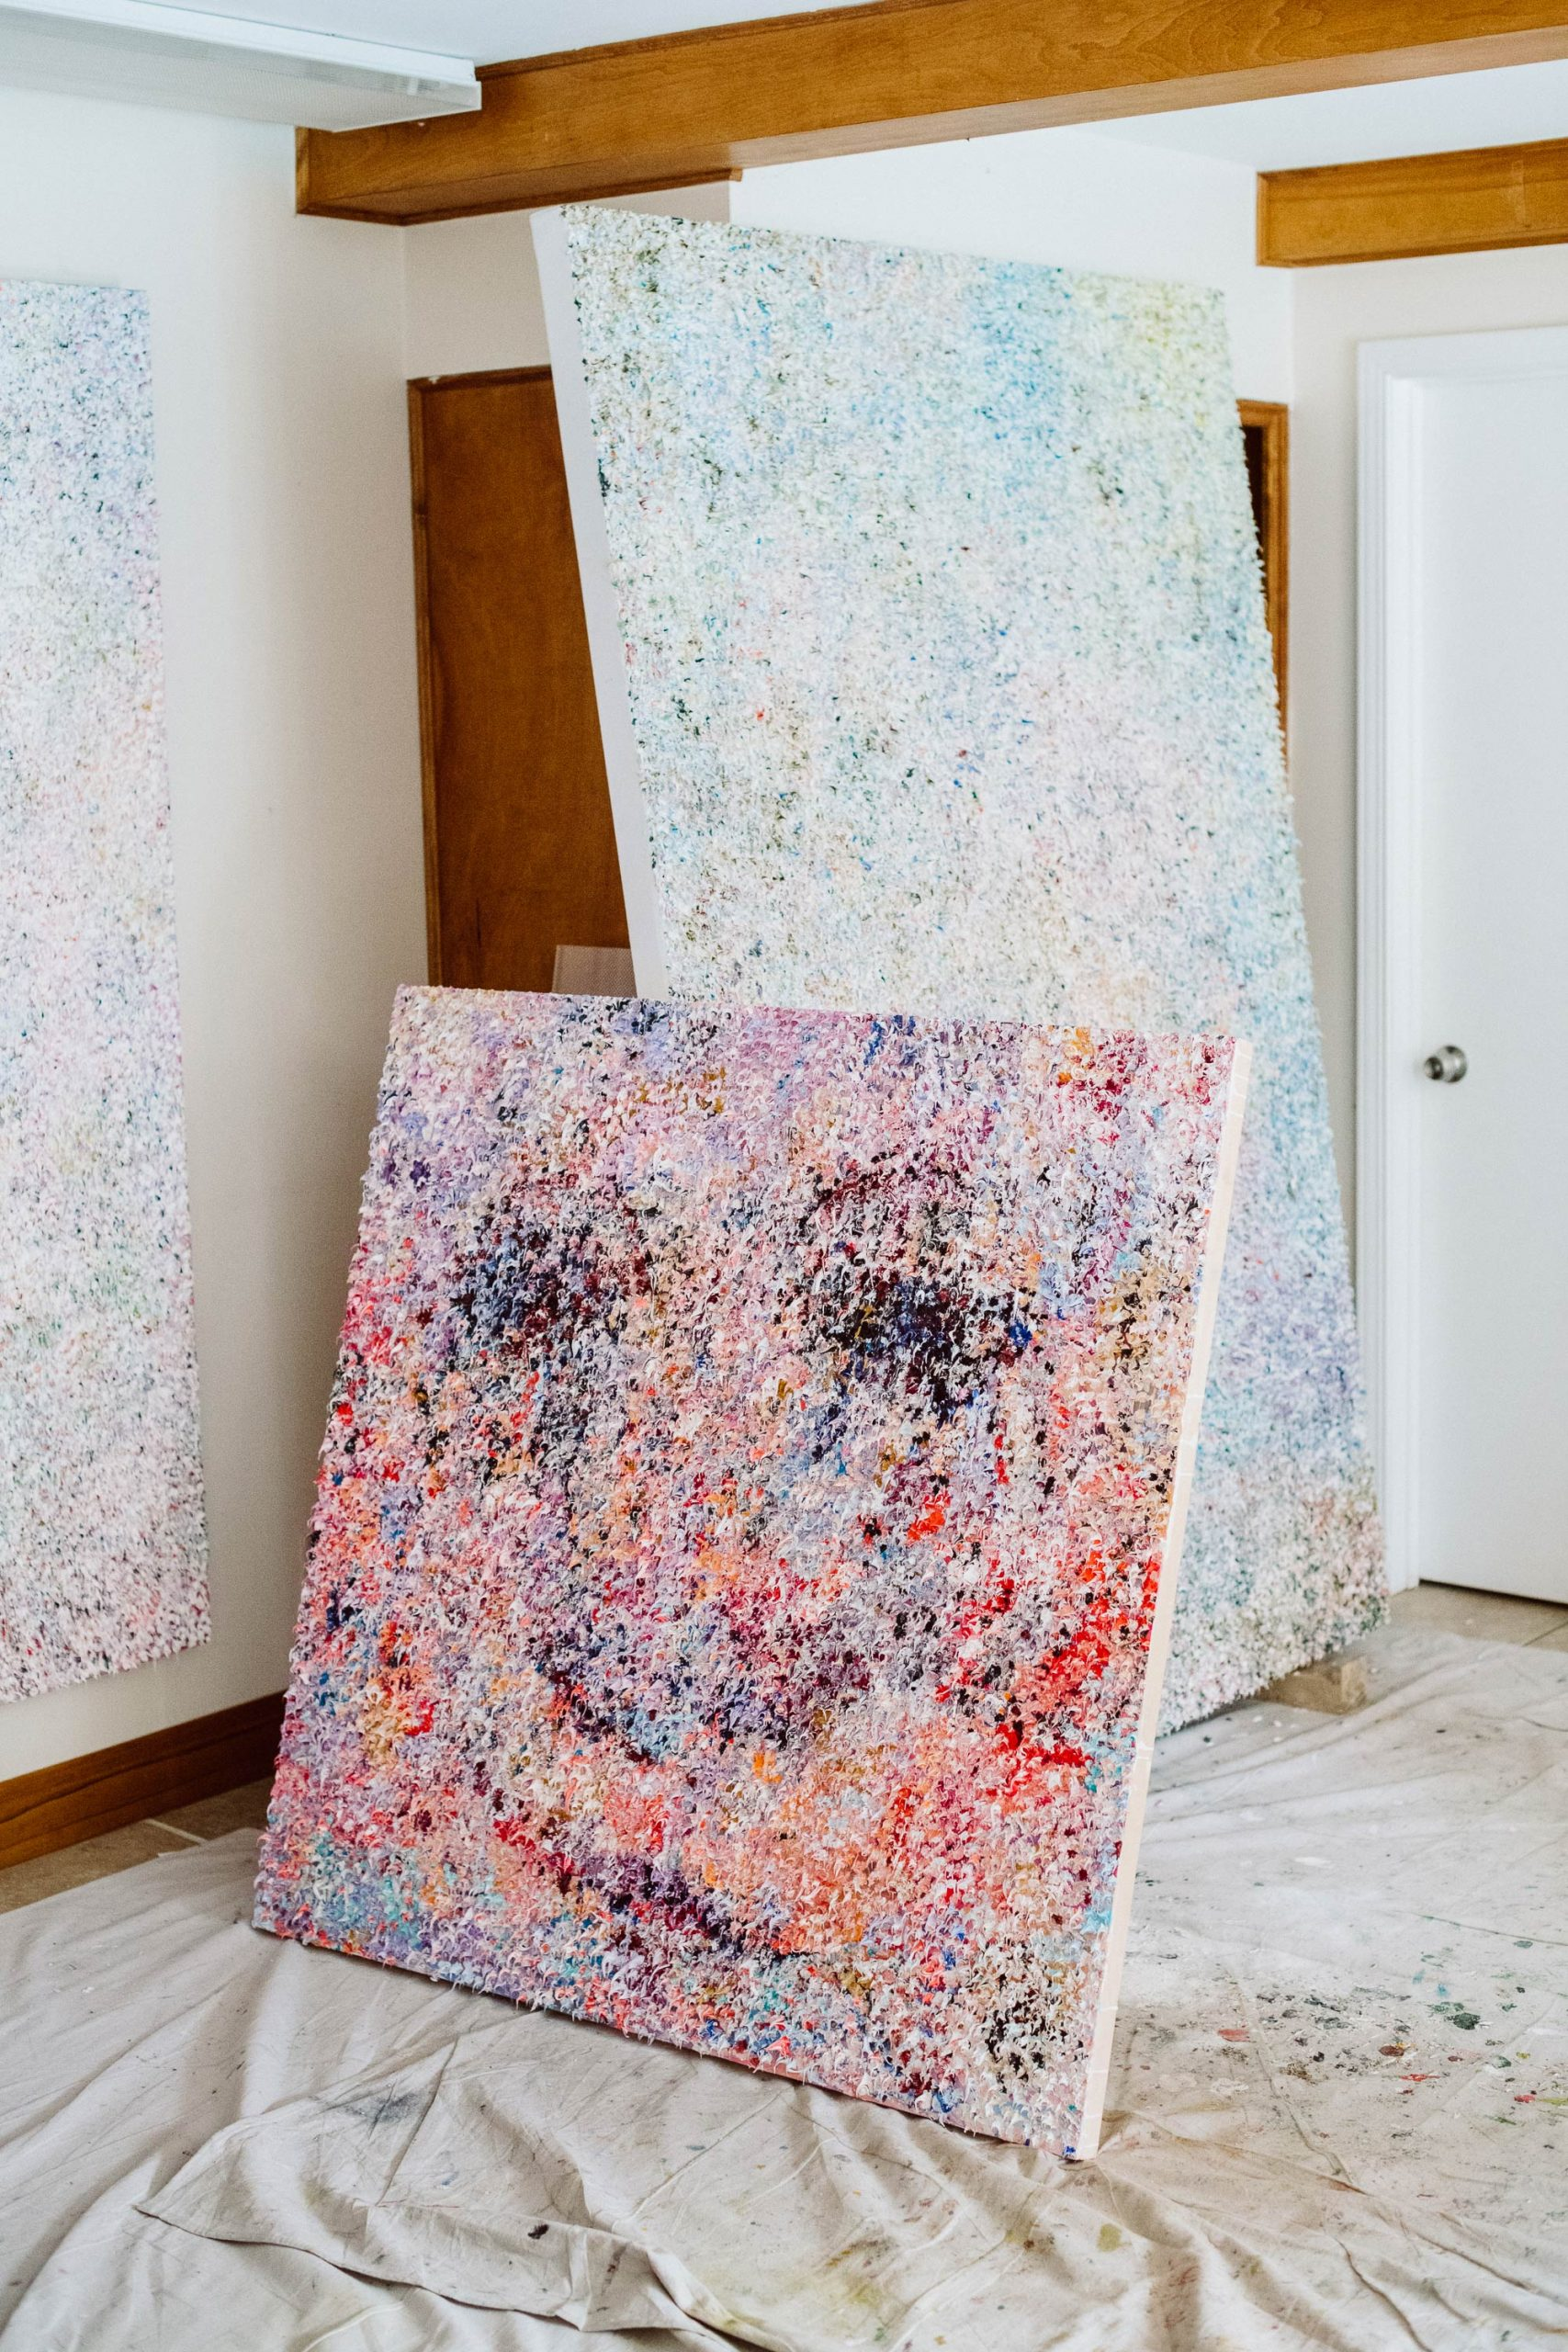 A small painted canvas leaning up against two larger white painted canvases.